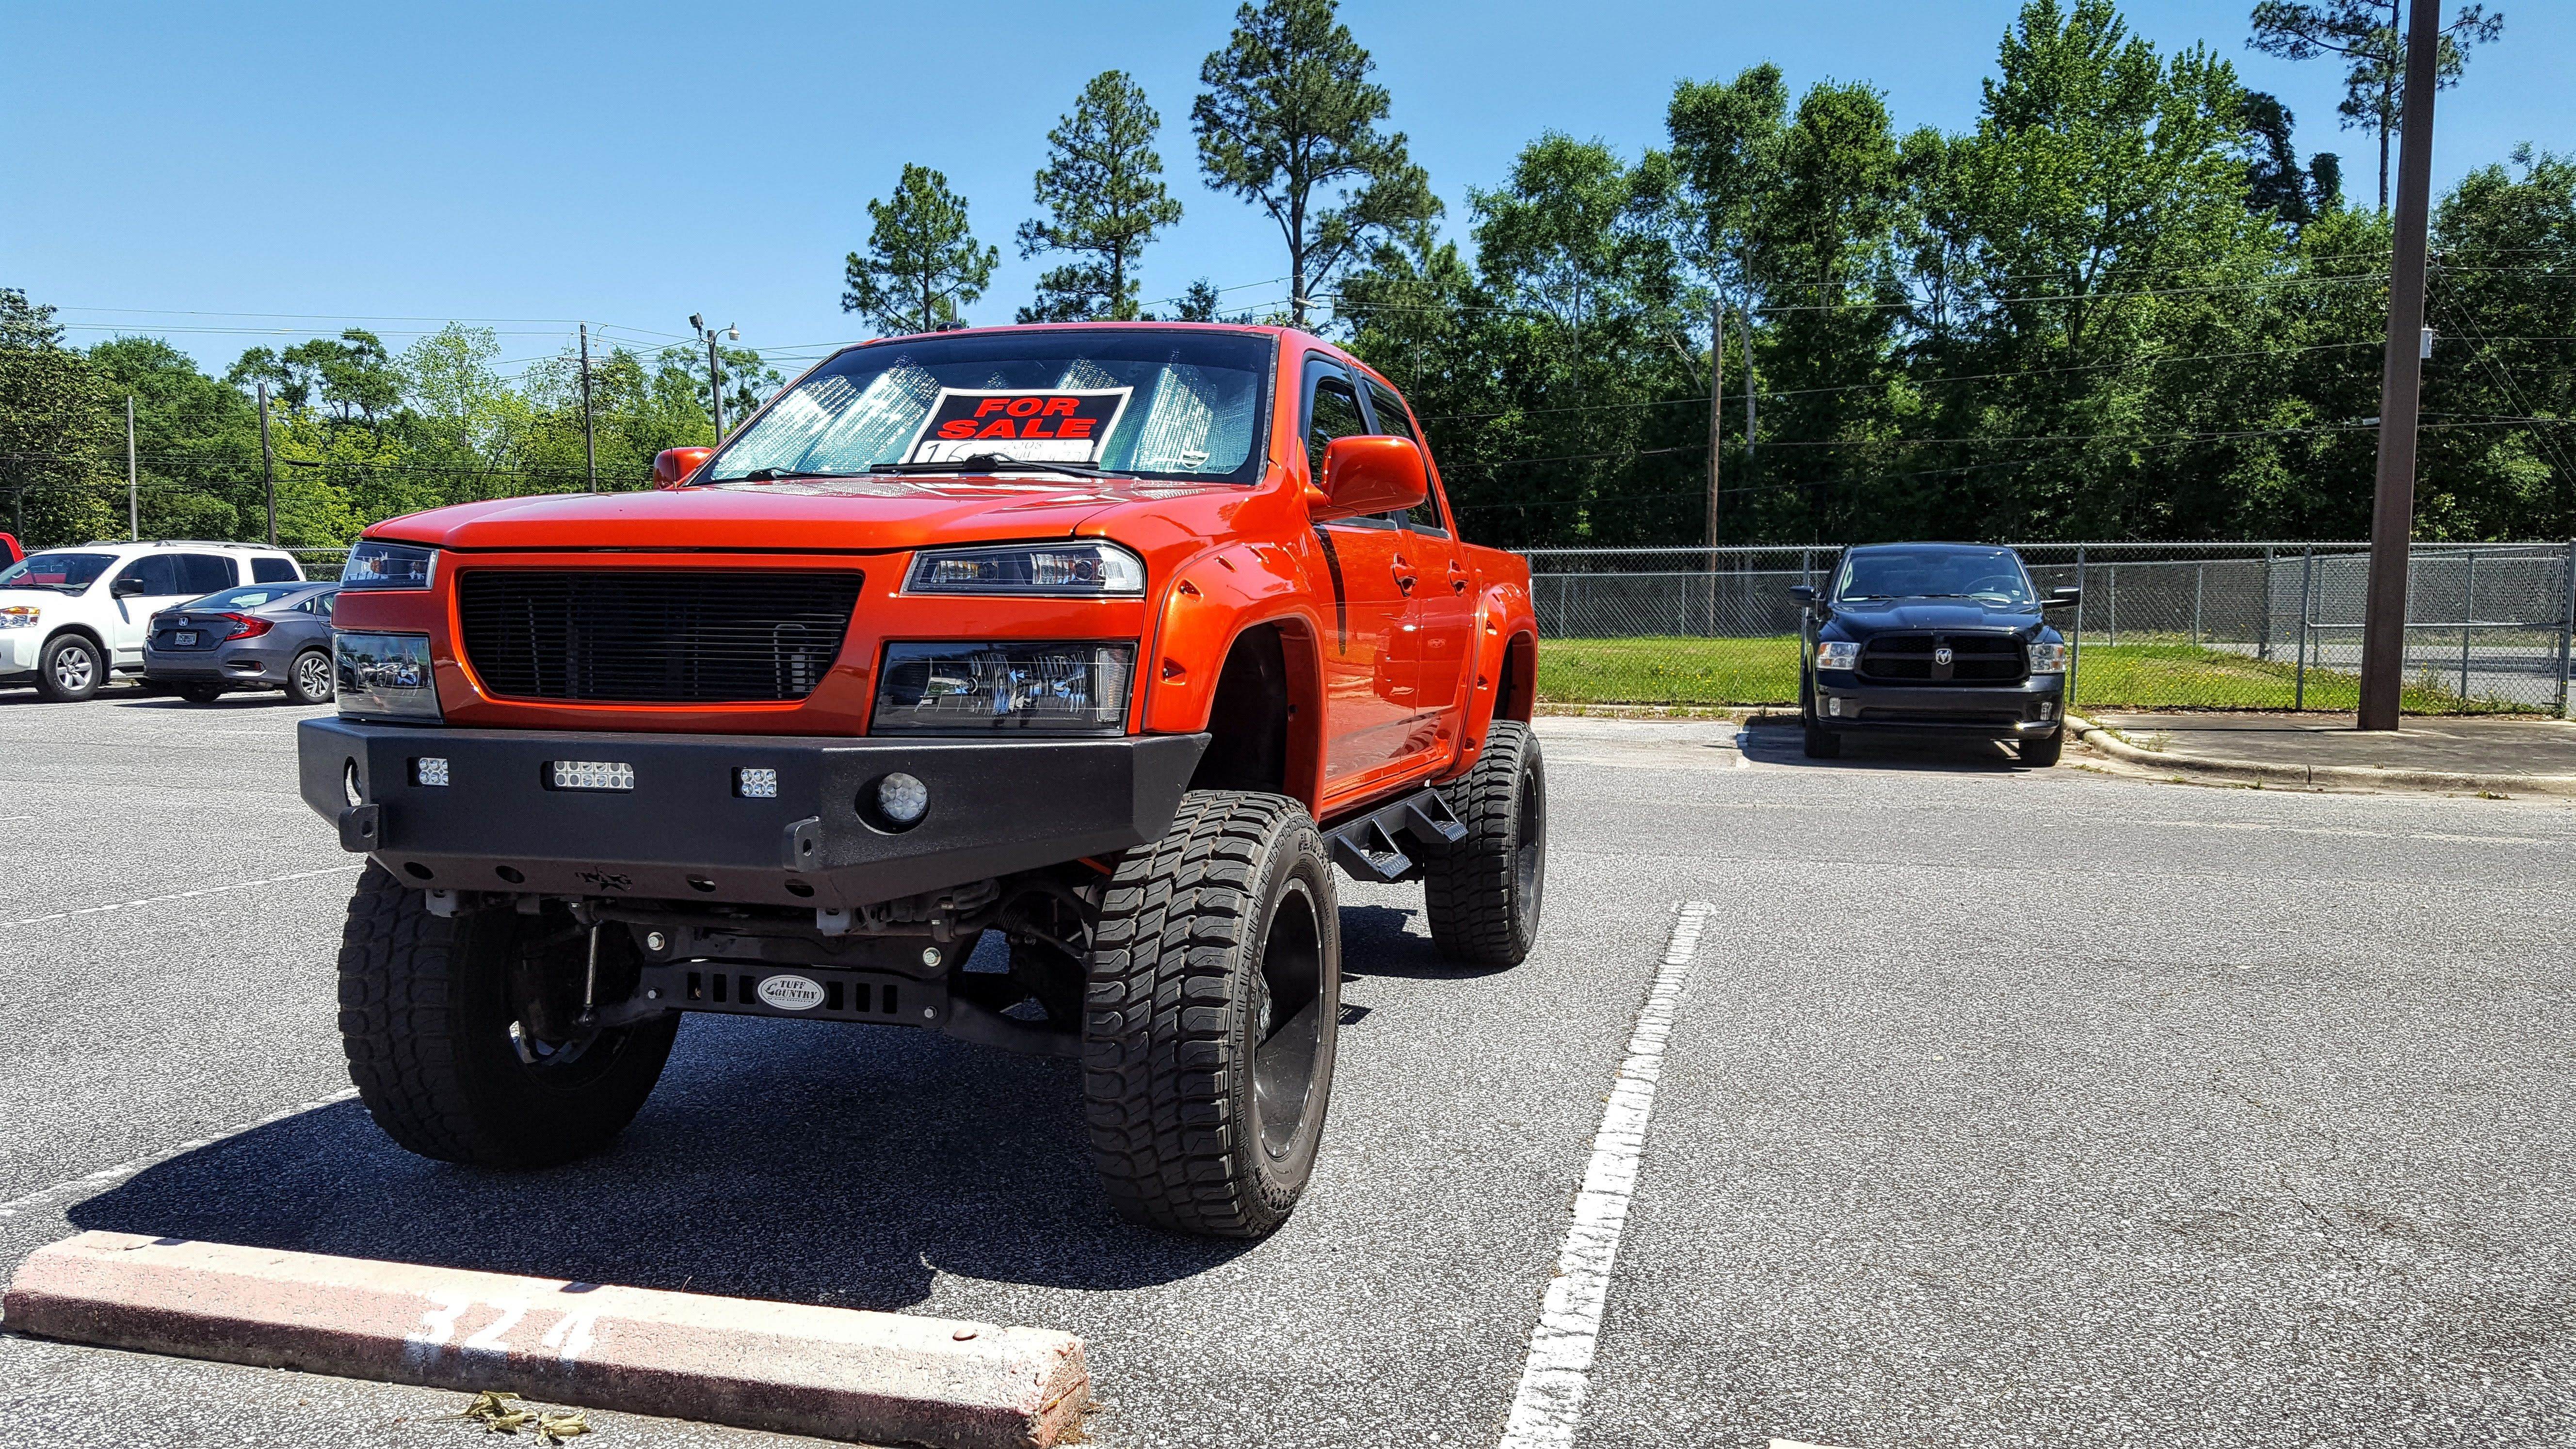 Lifted Chevy Colorado Gmc Canyon On 35s 10 5 Inches Of Lift